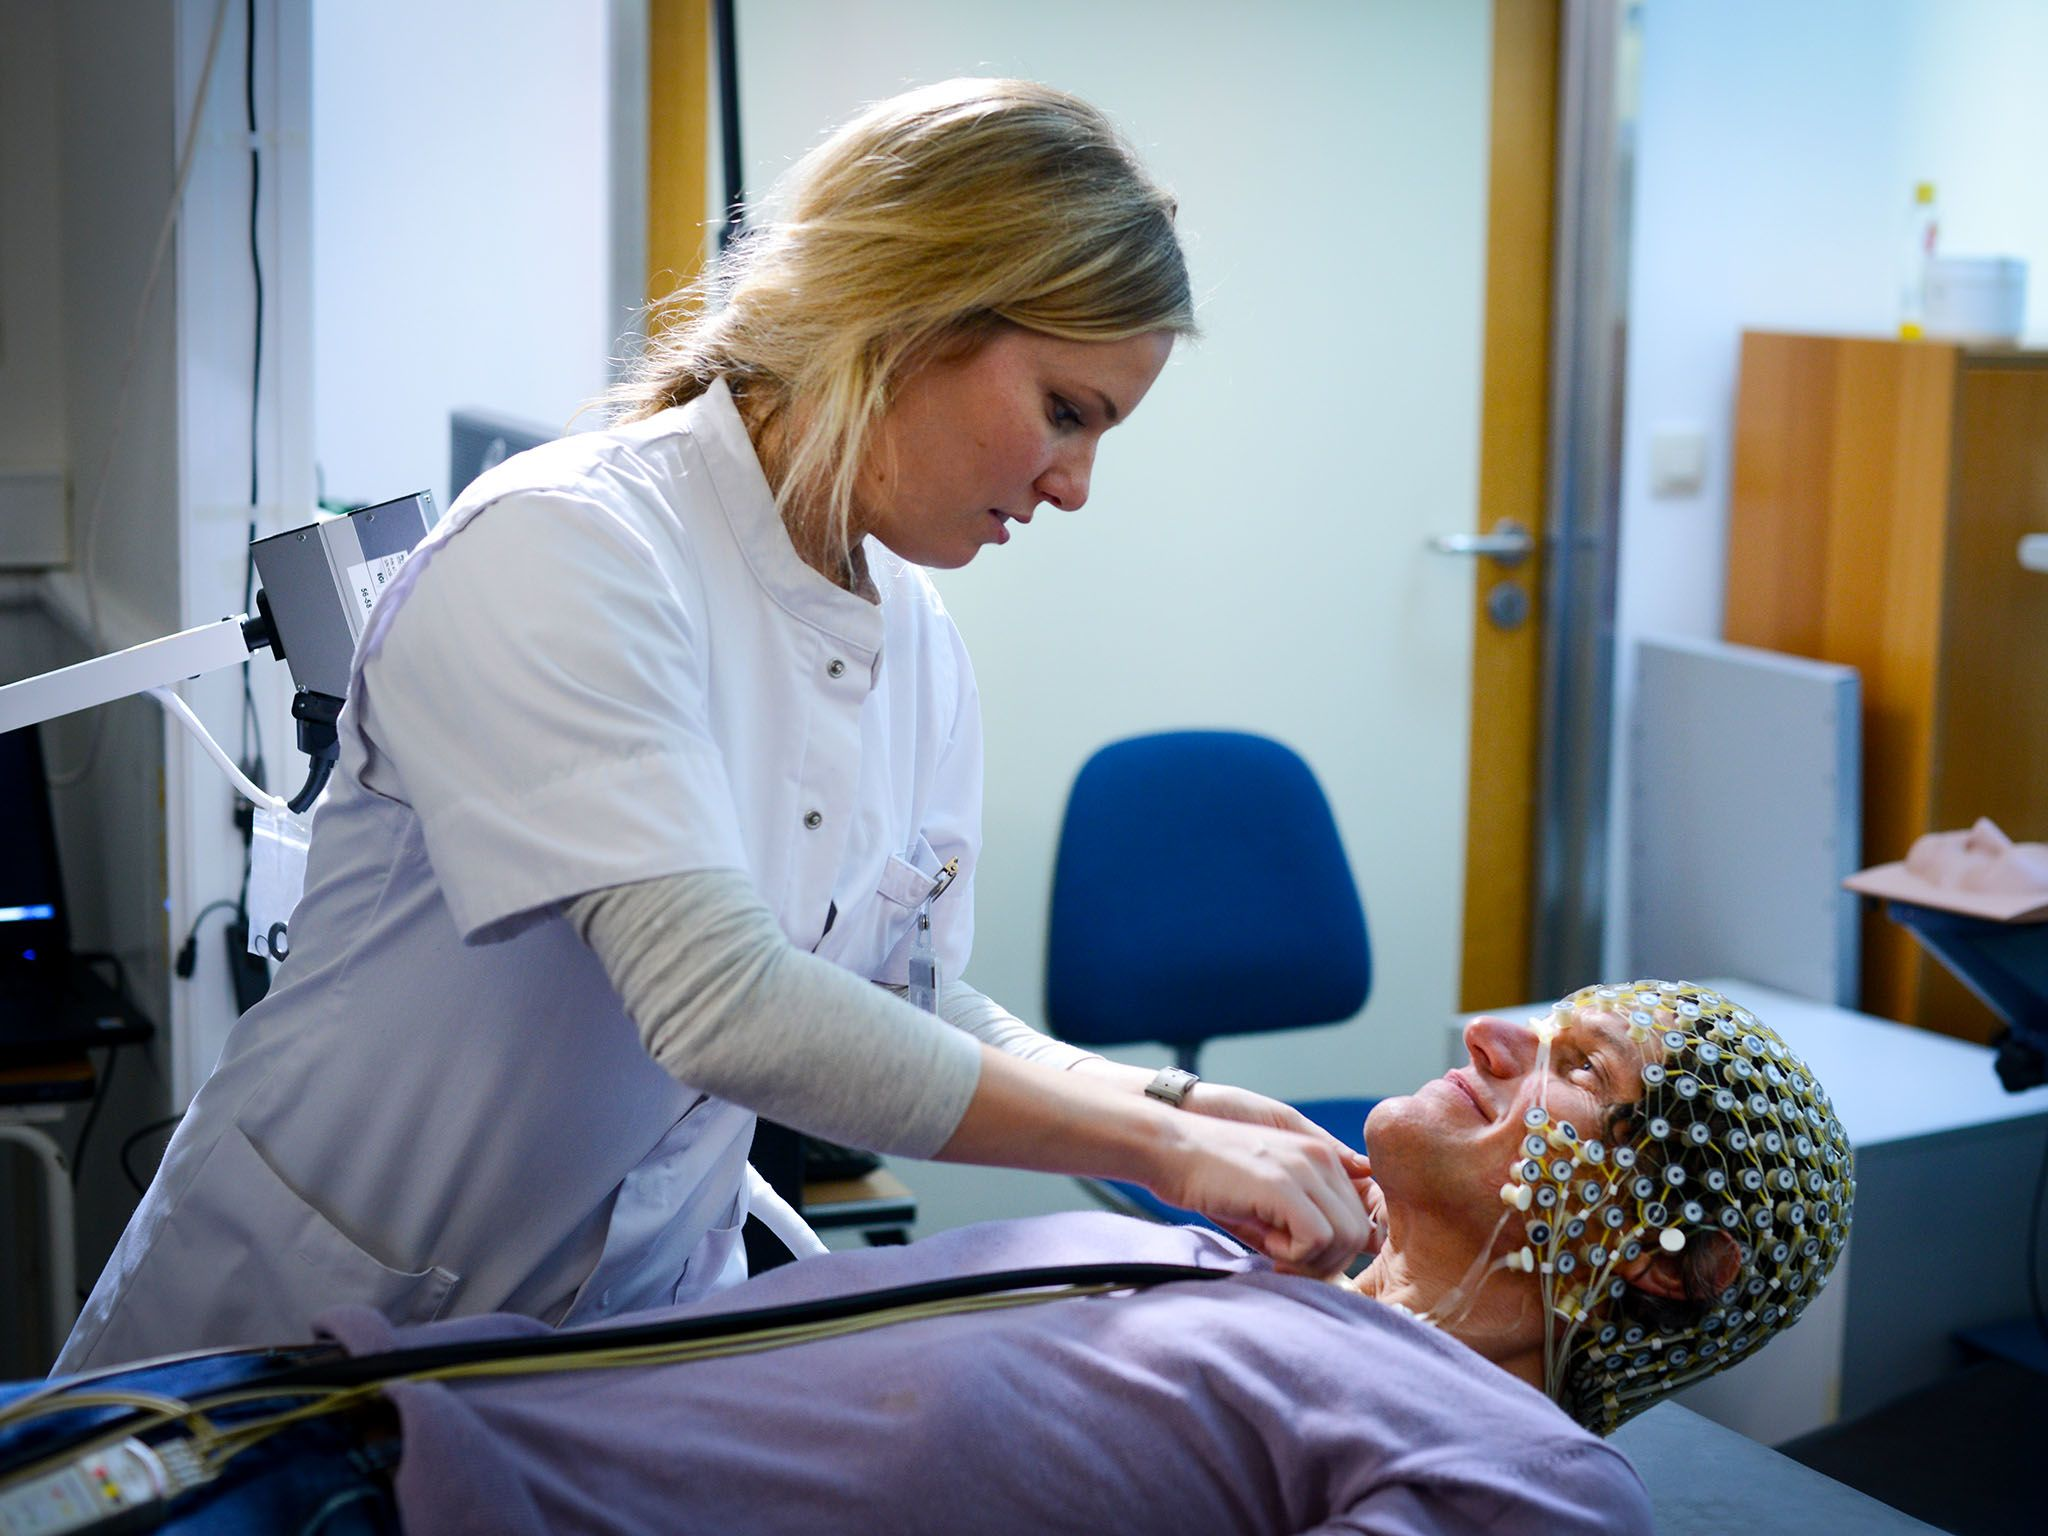 Liege, Belgium: Vanessa Charland setting up the EEG cap for Dr Steven Laureys whilst he's laying... [Photo of the day - June 2016]